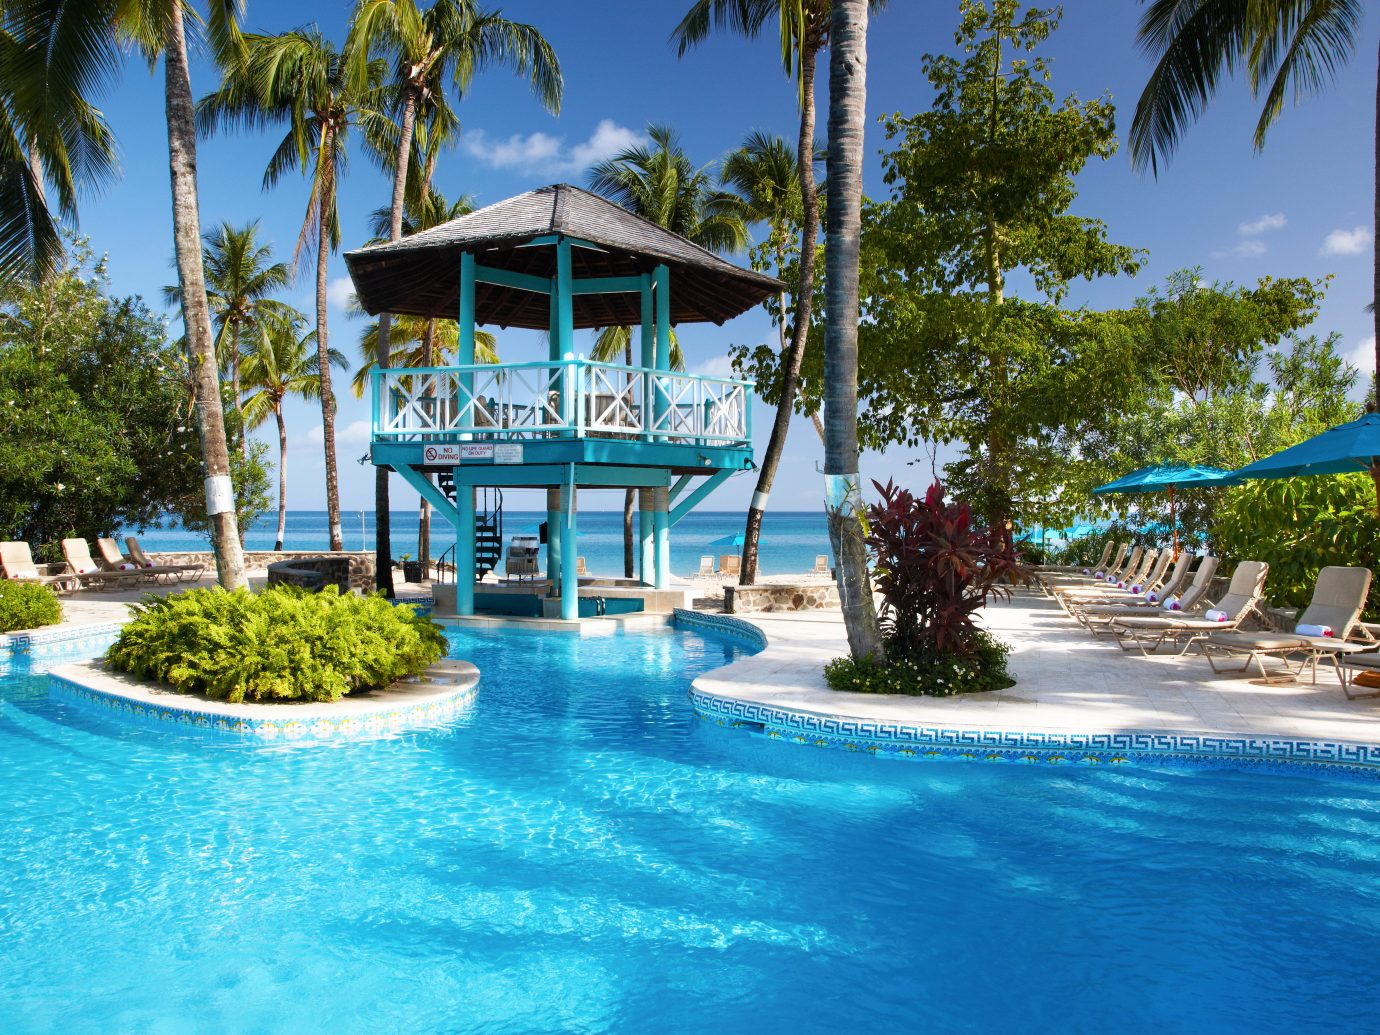 All-Inclusive Resorts Living Lounge Luxury Modern Pool tree Resort outdoor water leisure swimming pool Water park palm amusement park vacation estate blue caribbean resort town swimming park Lagoon reef surrounded